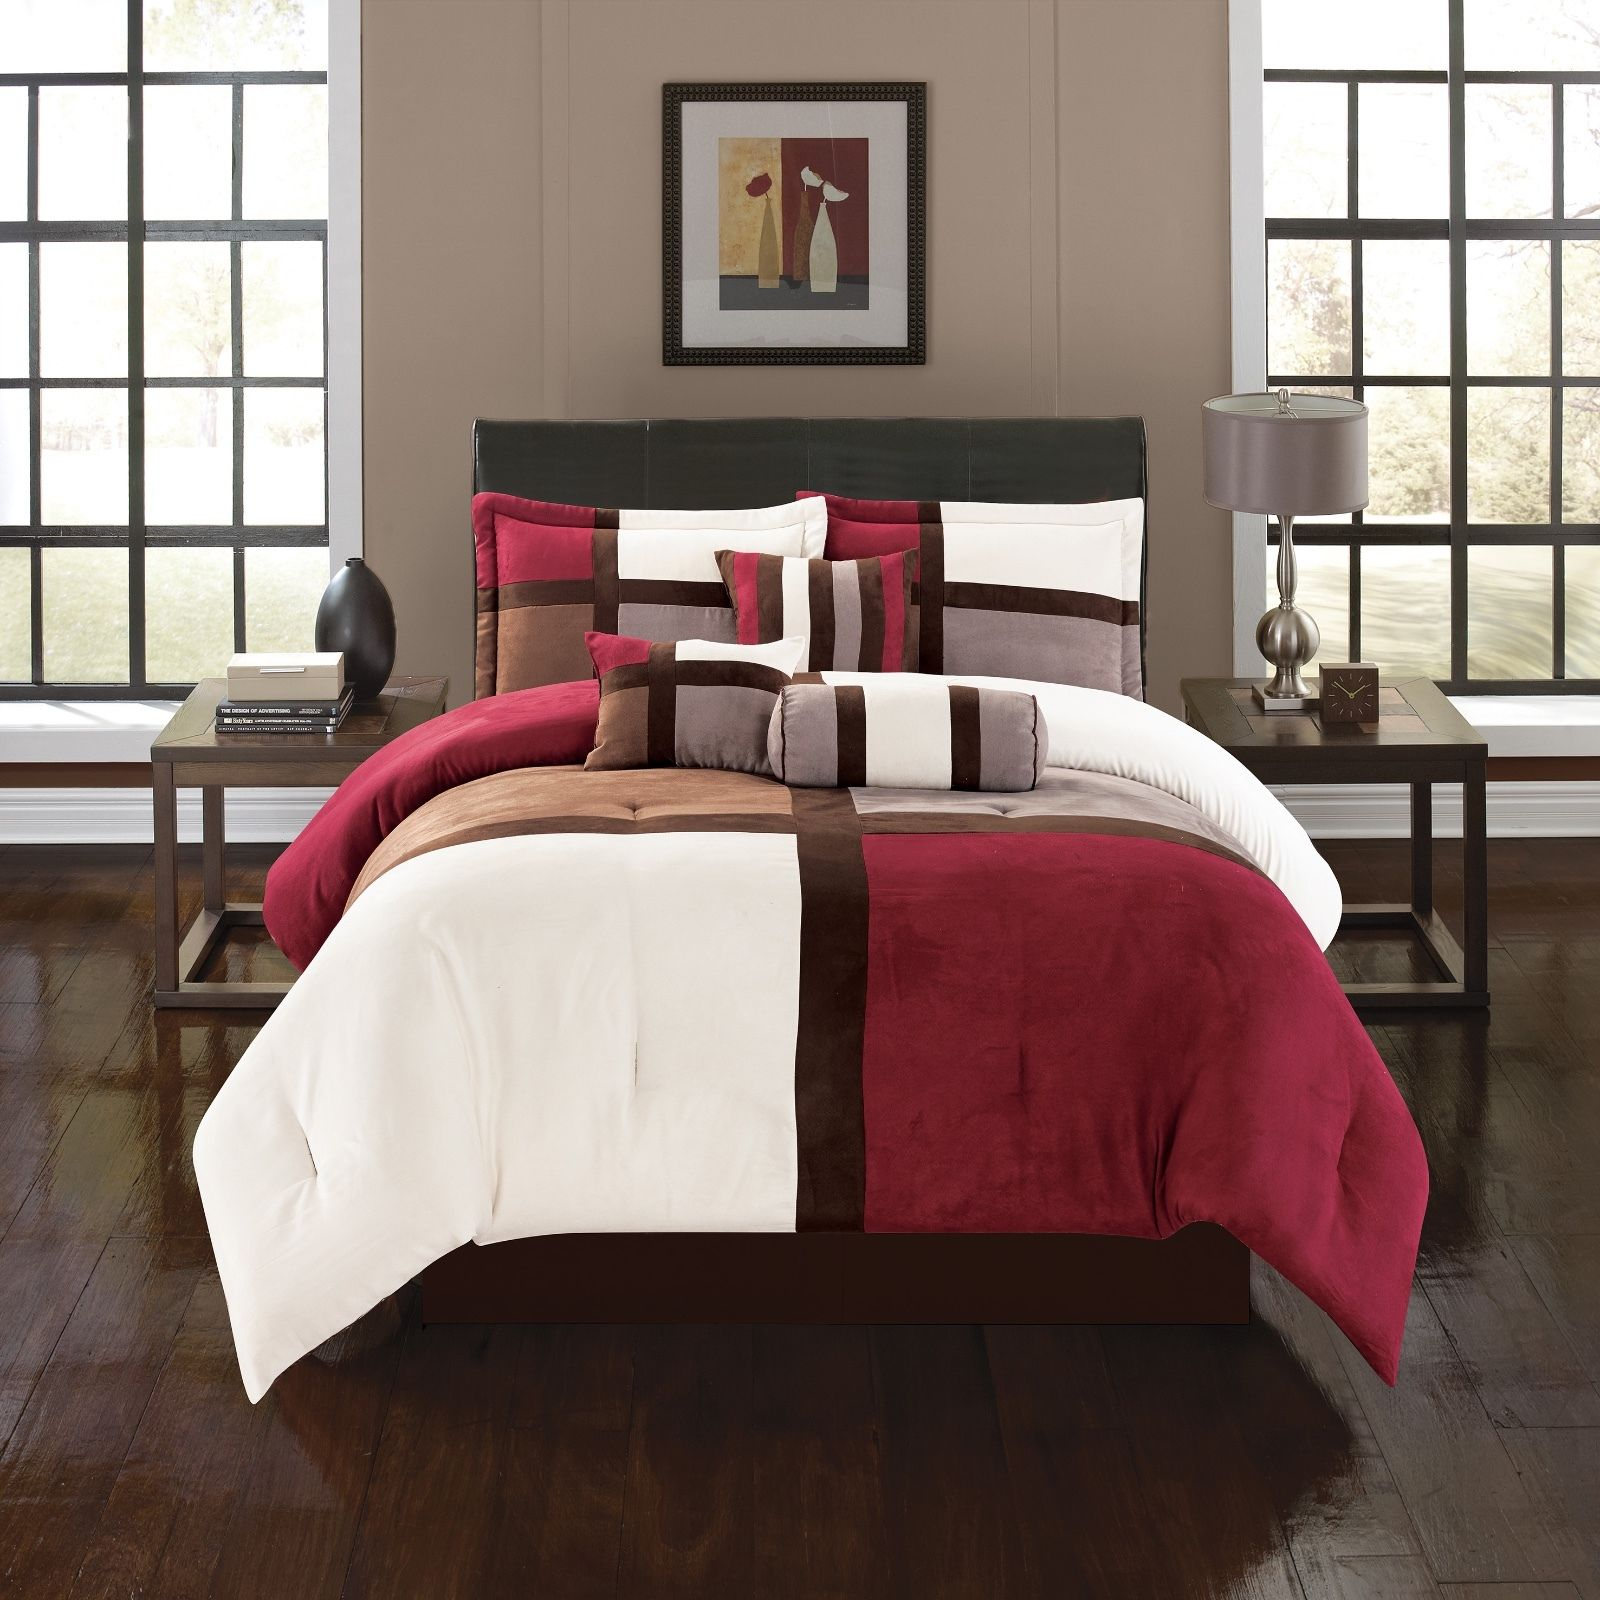 Luxurious Queen Size 7-Piece Comforter Set Alejandra Micro Suede Soft Bed in a Bag Patchwork Brown & Burgundy